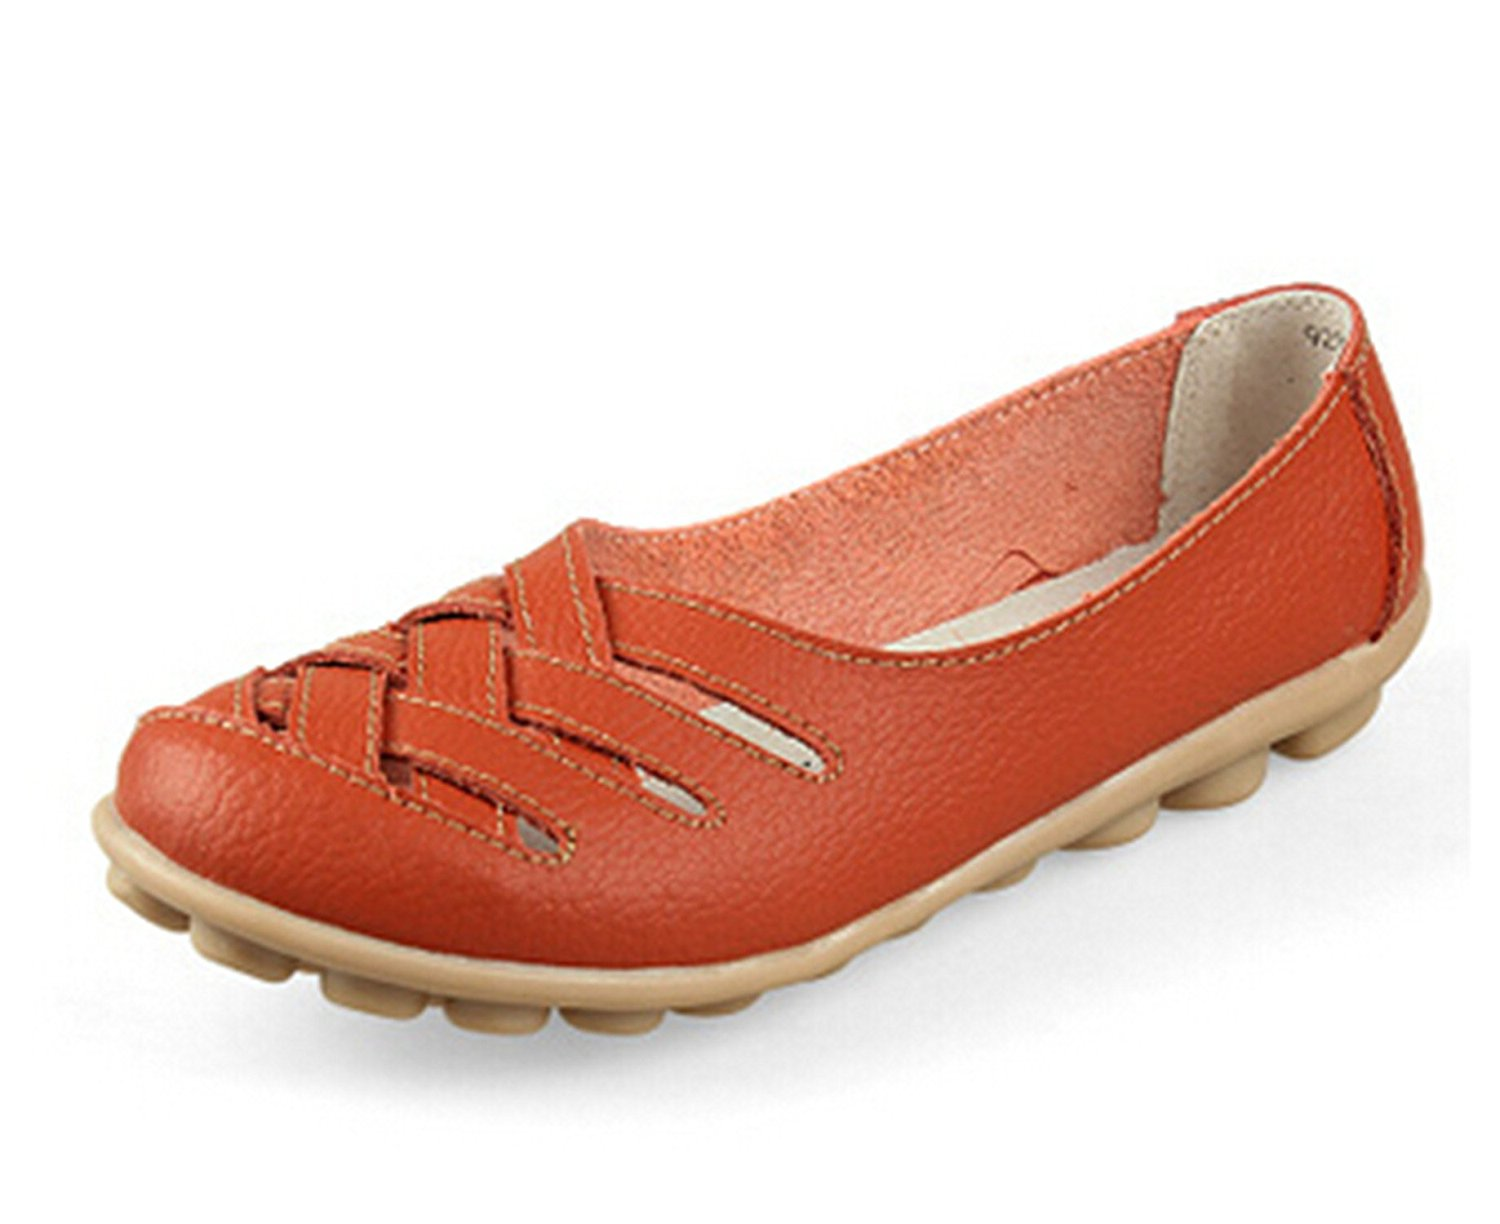 Surprising Day Flats Size35-40 Fashion 7 Color Cheap Genuine Leather Flats Mother Shoes for Women